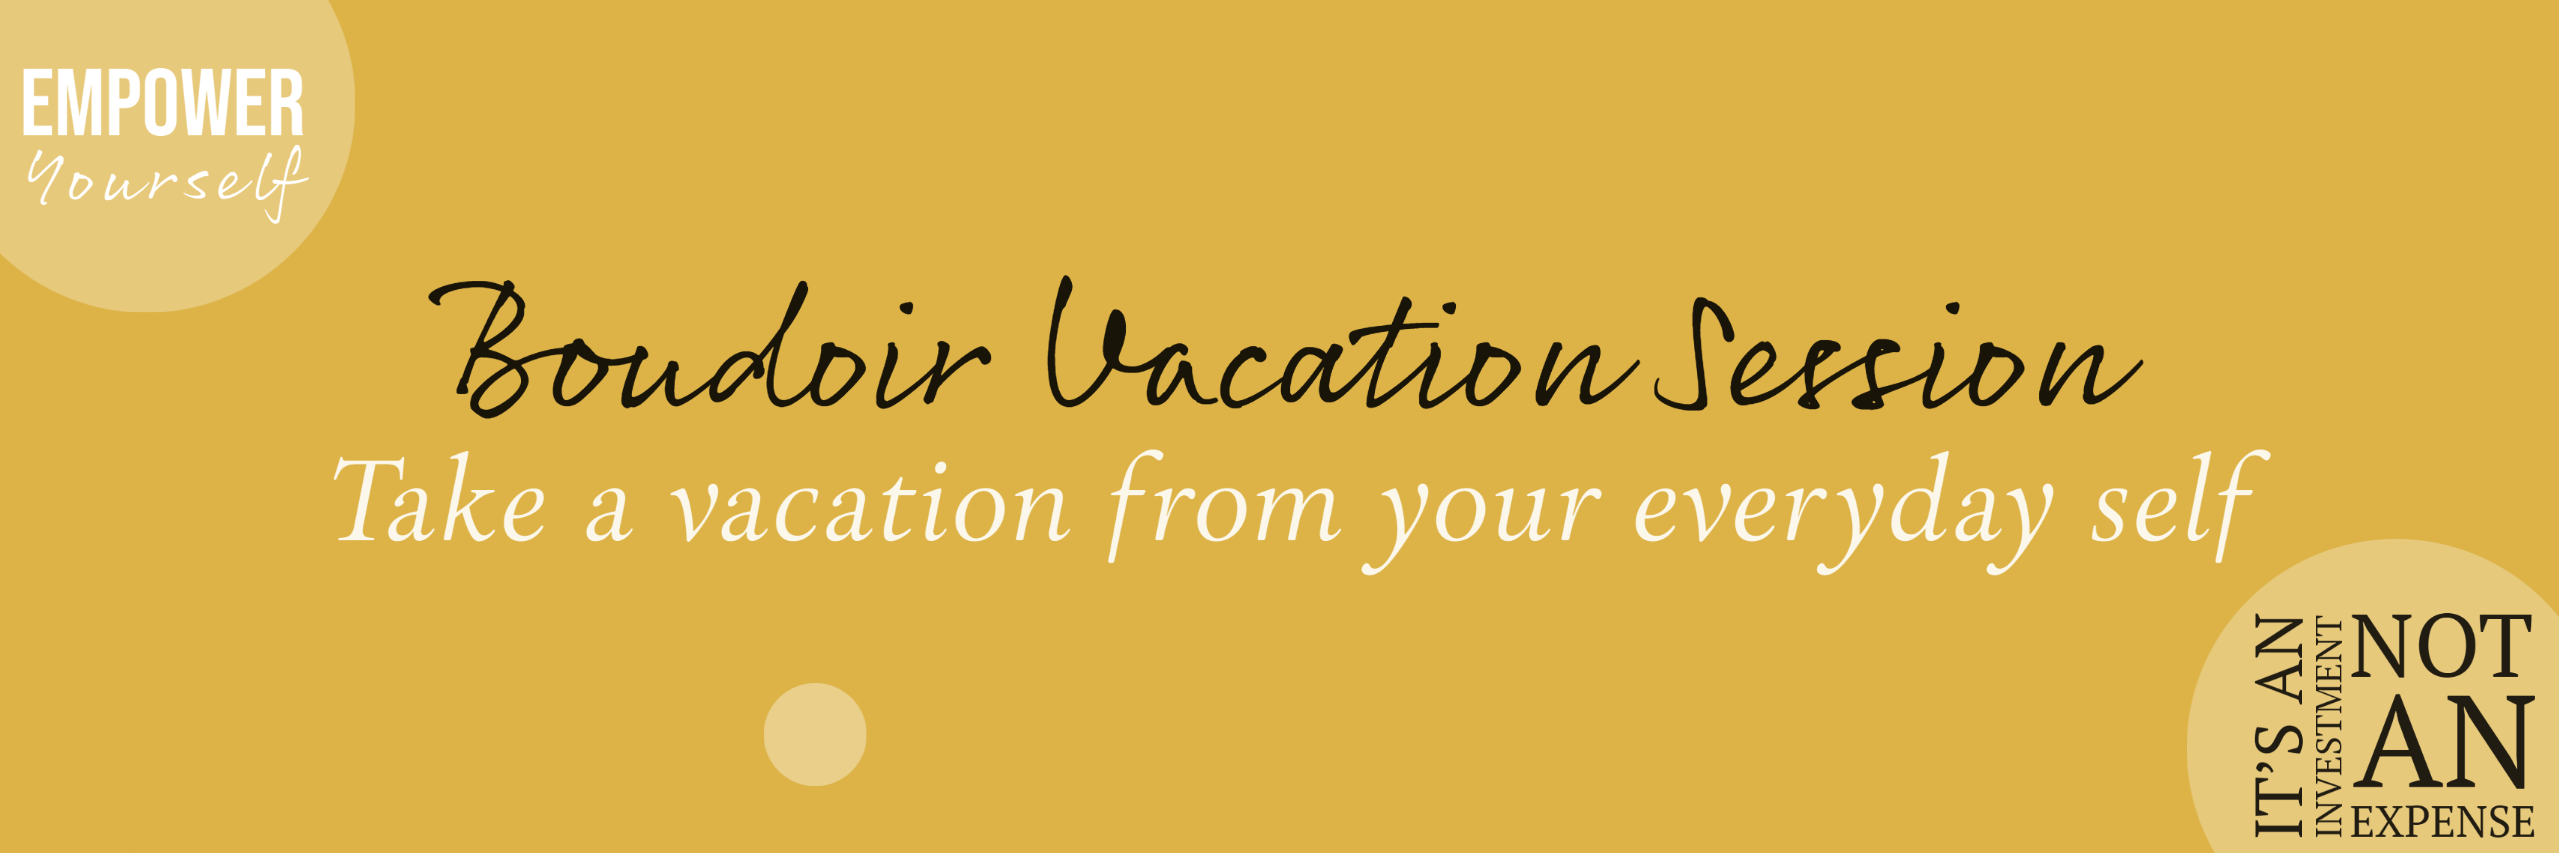 Boudoir Vacation Session - Take a vacation from your everyday self